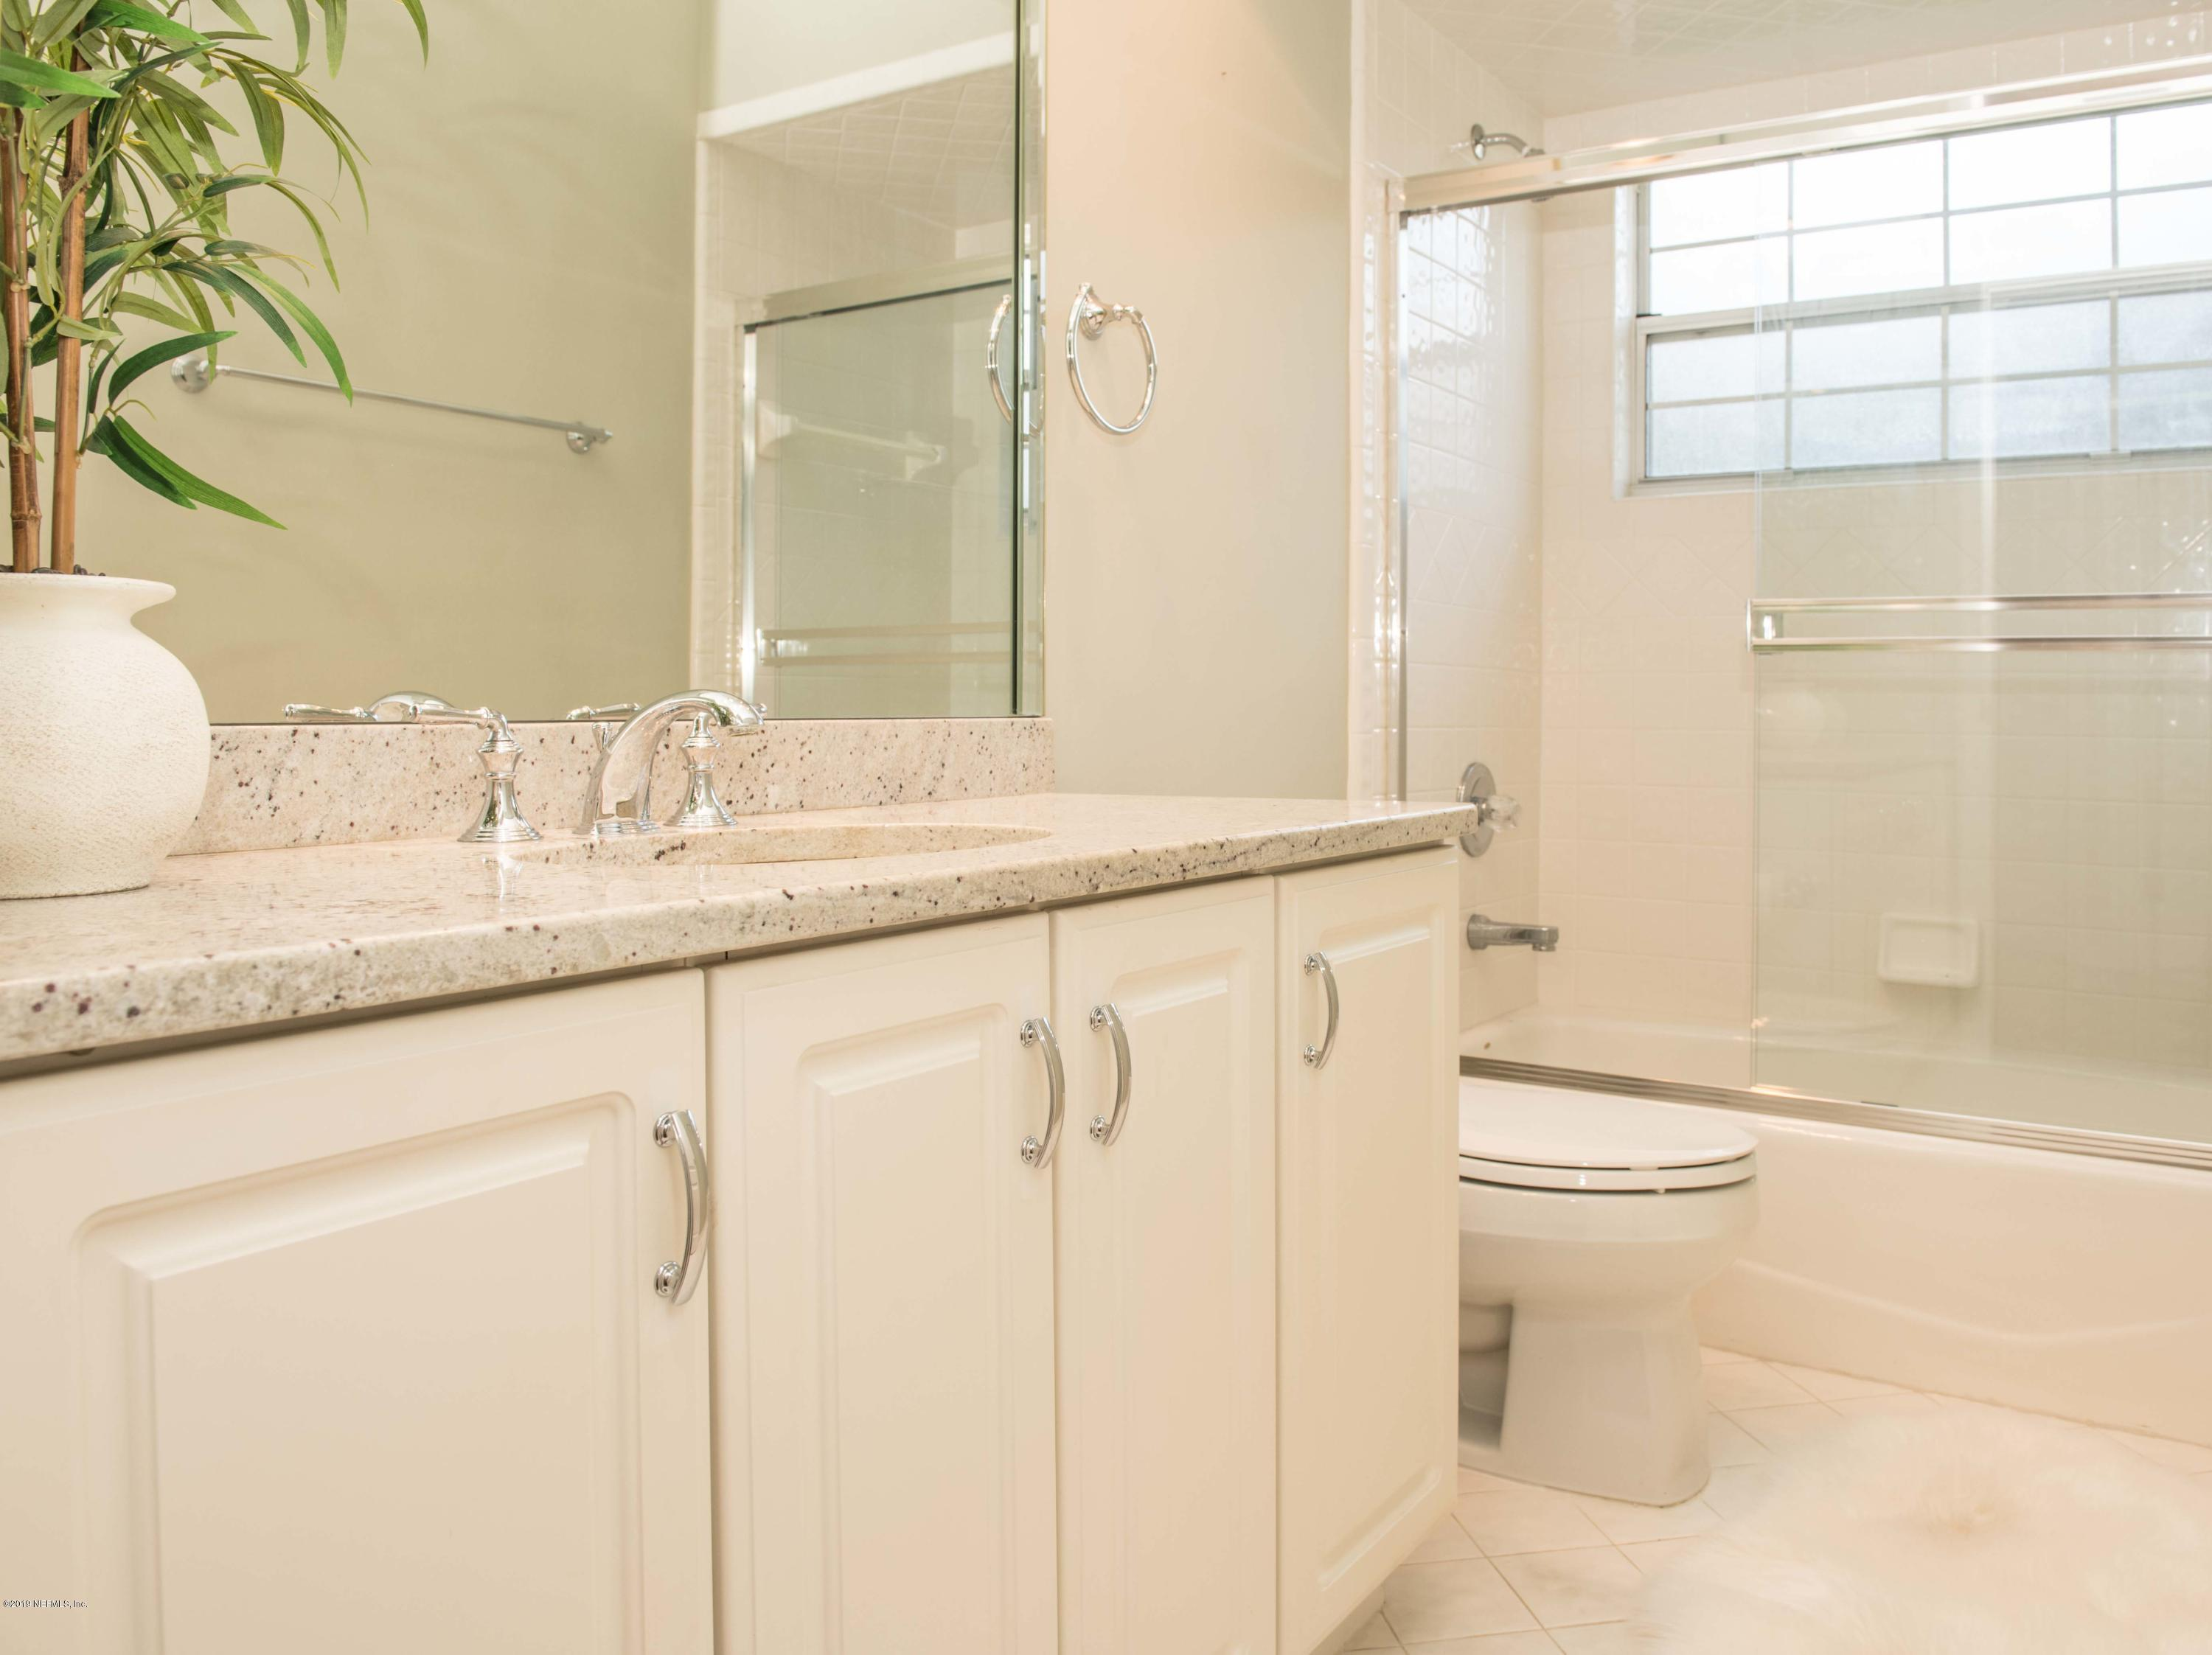 3943 CHICORA WOOD, JACKSONVILLE, FLORIDA 32224, 4 Bedrooms Bedrooms, ,3 BathroomsBathrooms,Residential - single family,For sale,CHICORA WOOD,993214